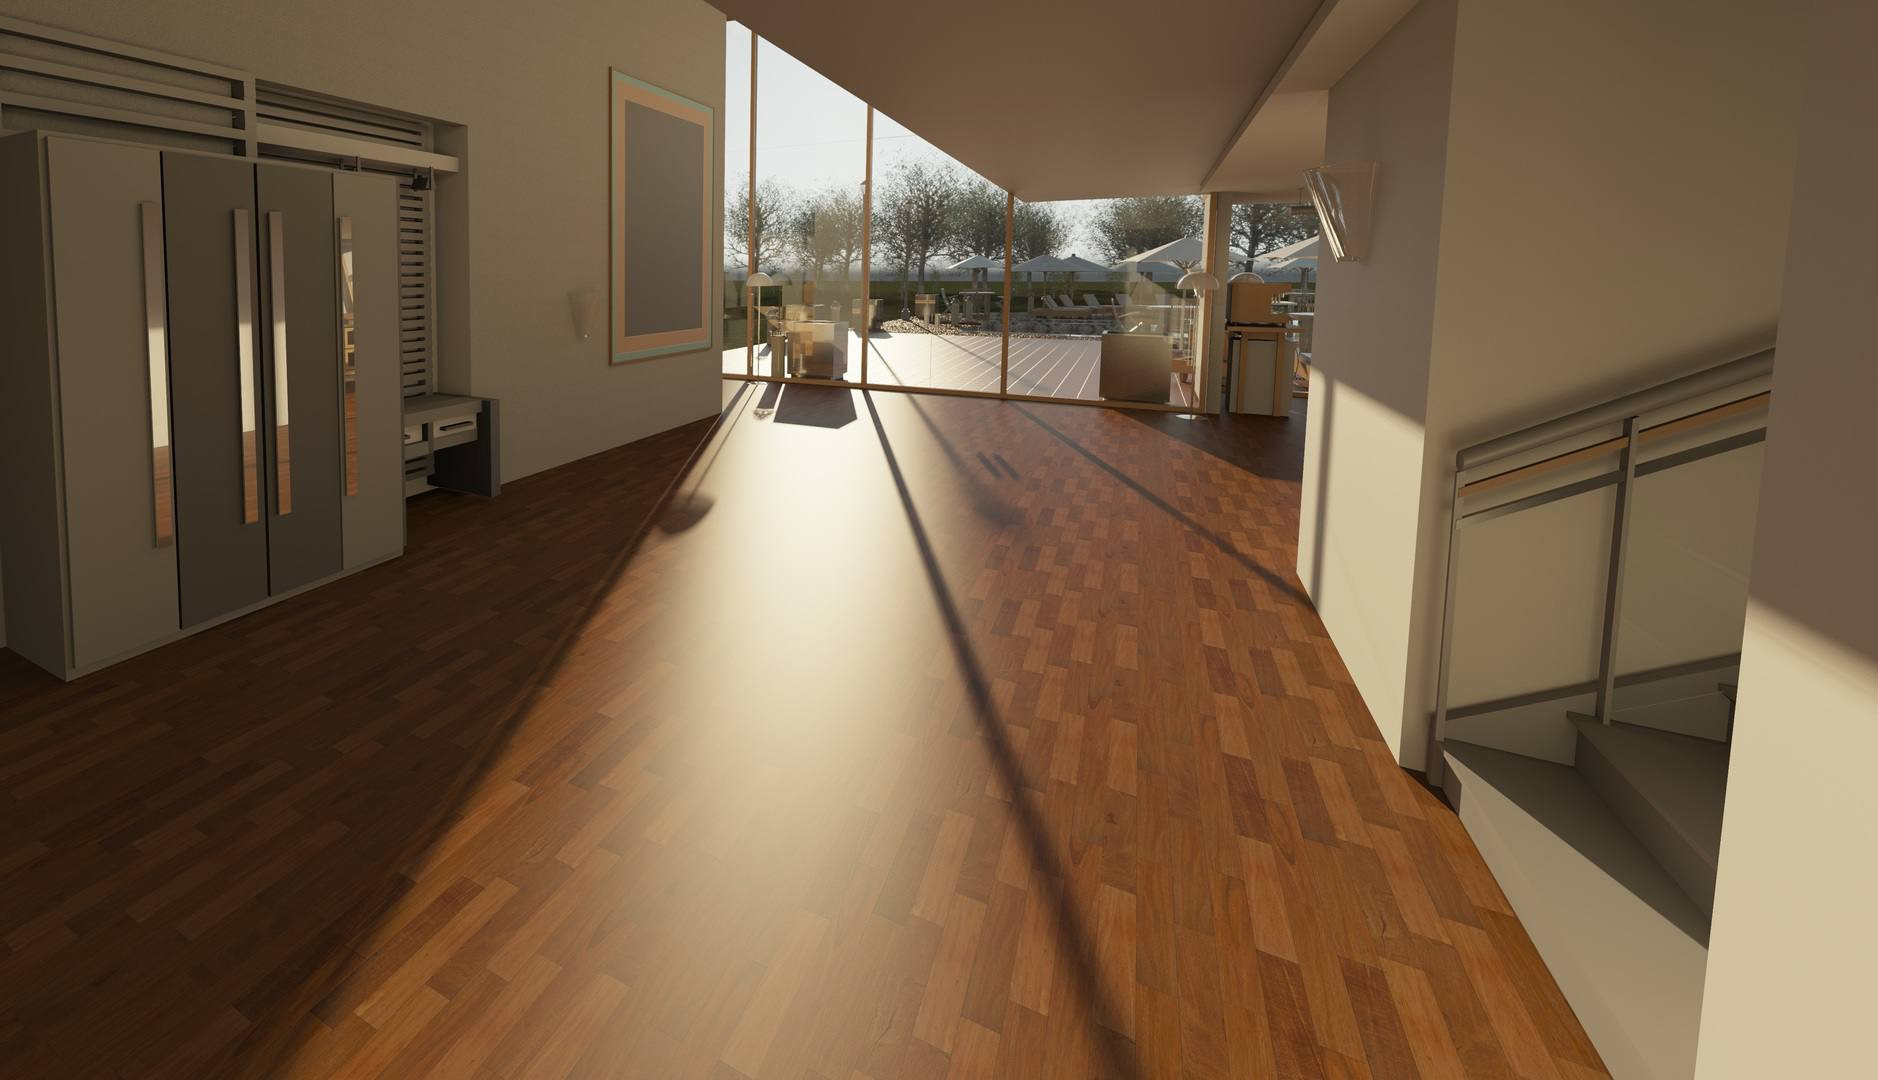 hardwood flooring installation issues of common flooring types currently used in renovation and building intended for architecture wood house floor interior window 917178 pxhere com 5ba27a2cc9e77c00503b27b9